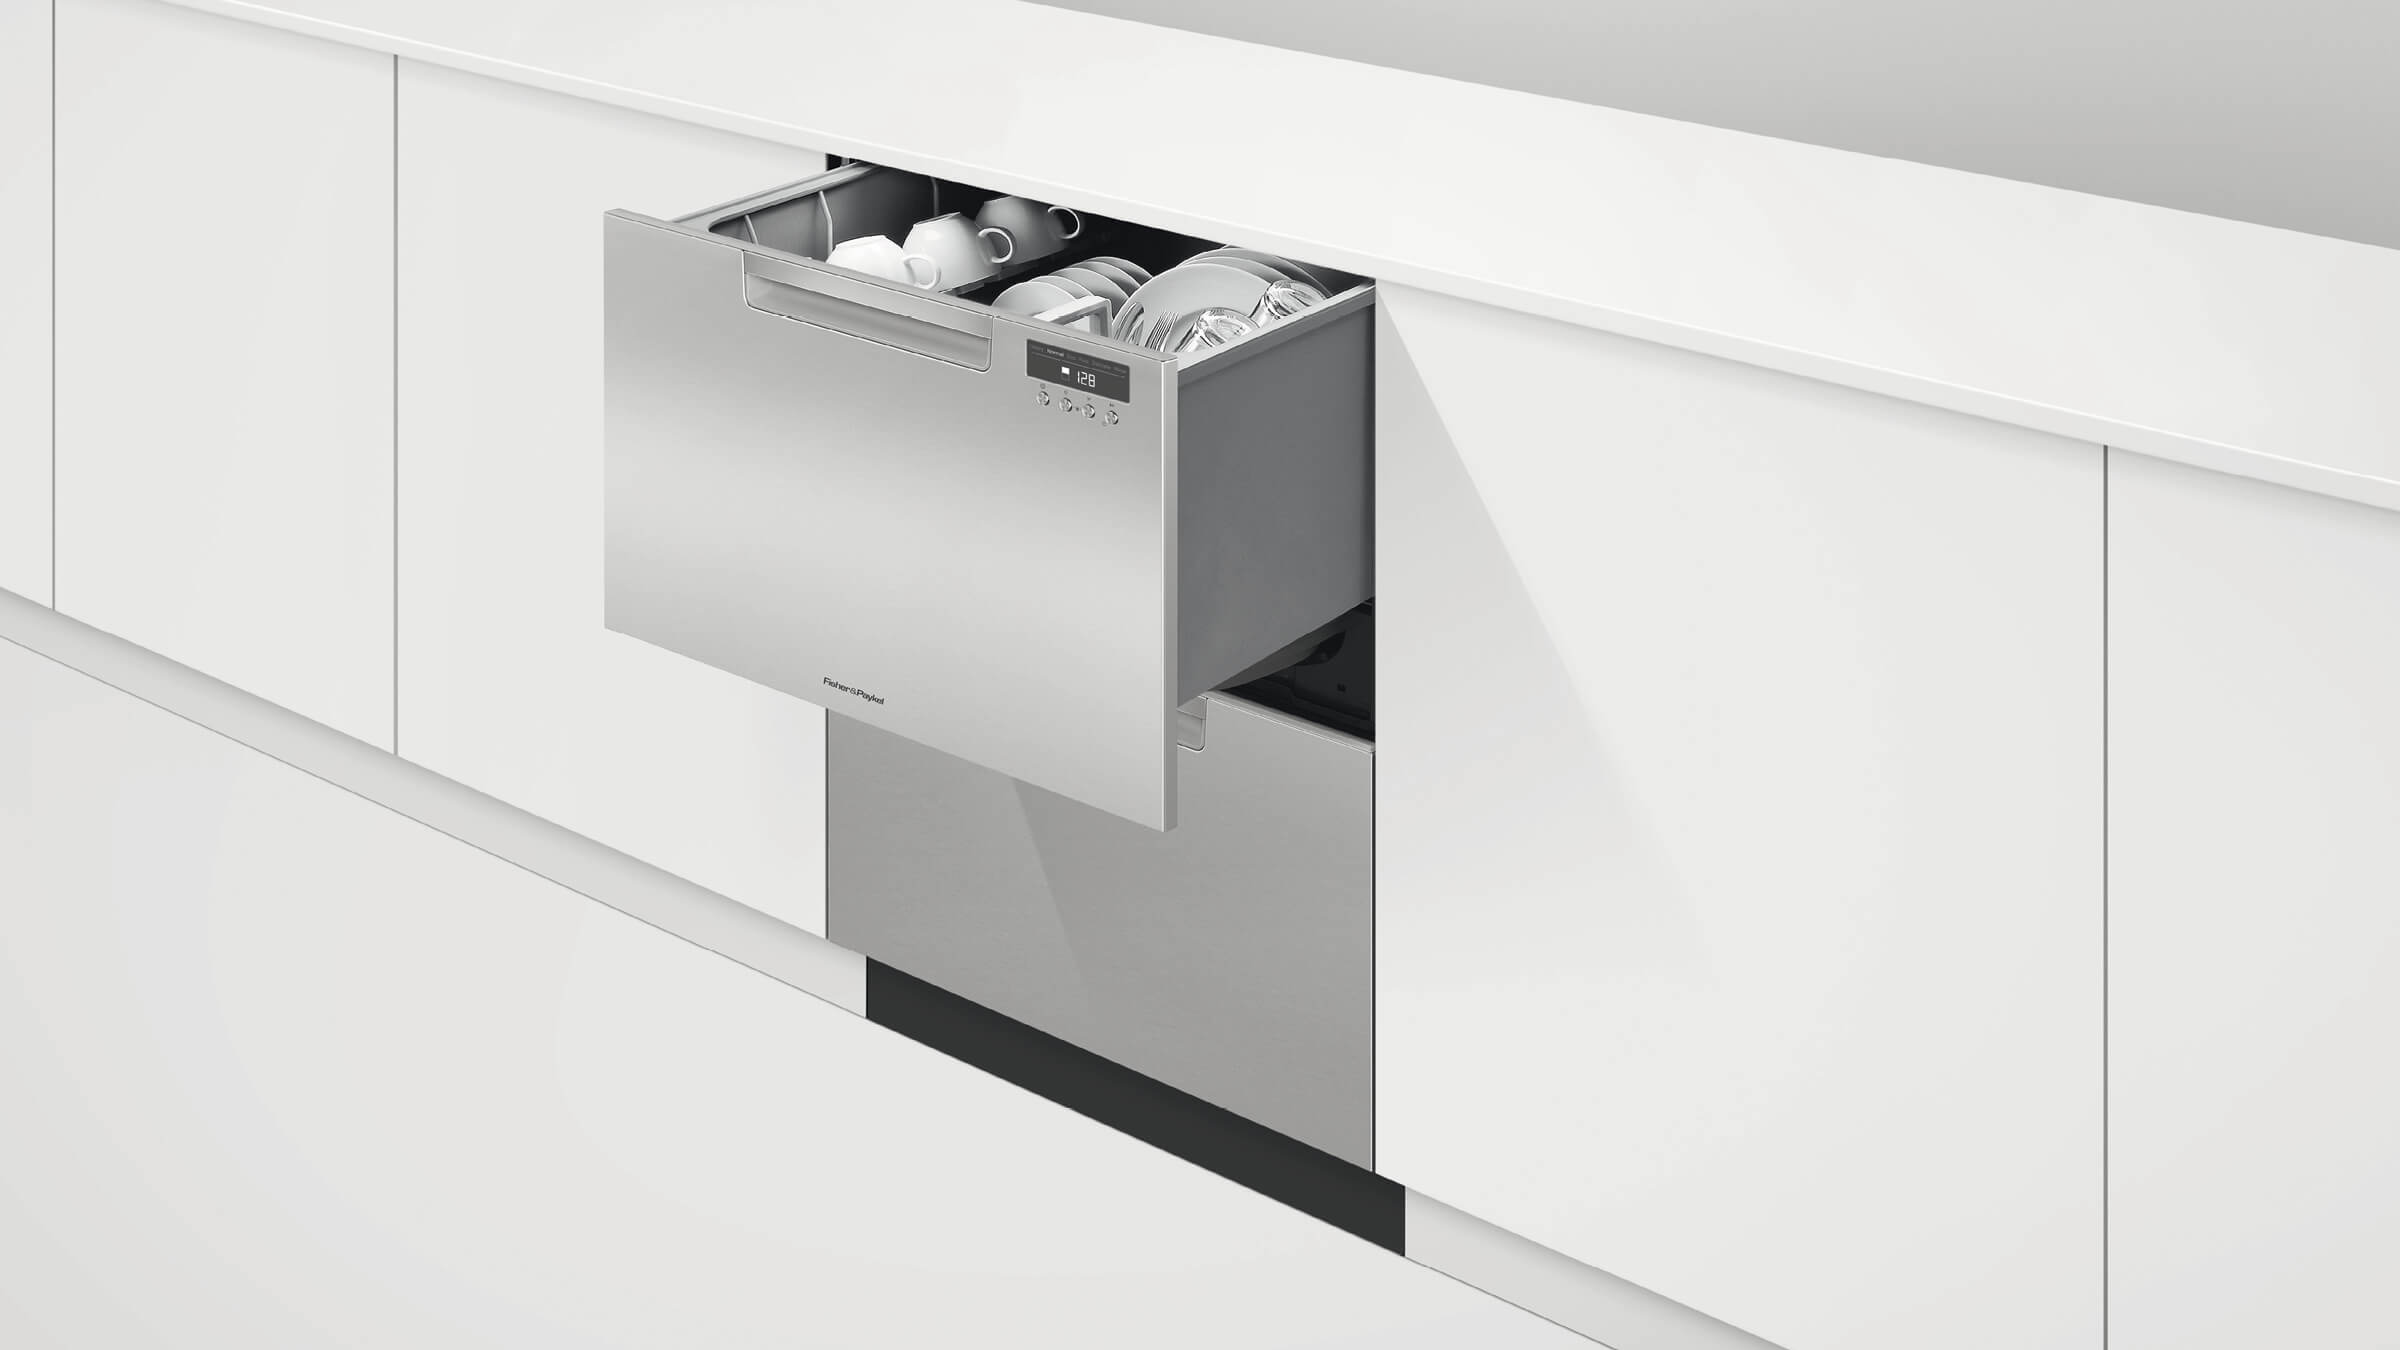 ADA compliant Double DishDrawer dishwasher